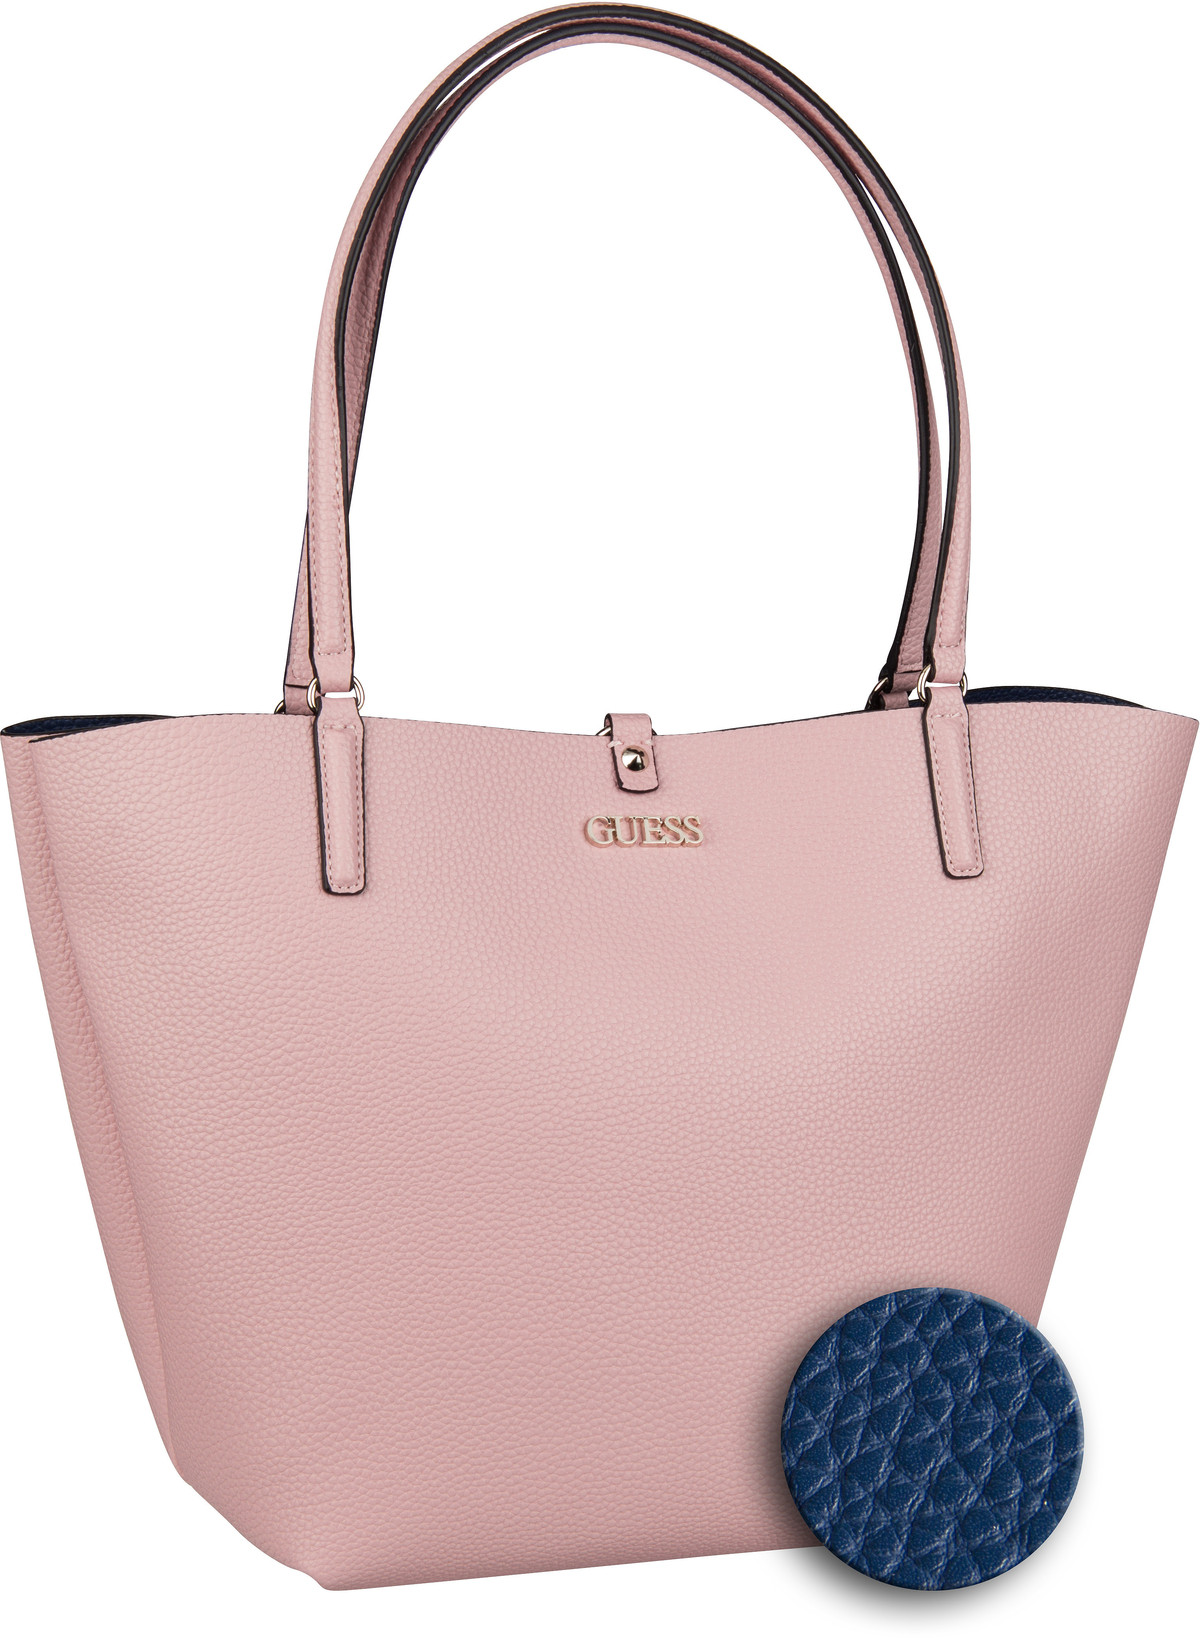 Shopper Alby Toggle Tote Blush (innen: Blau)